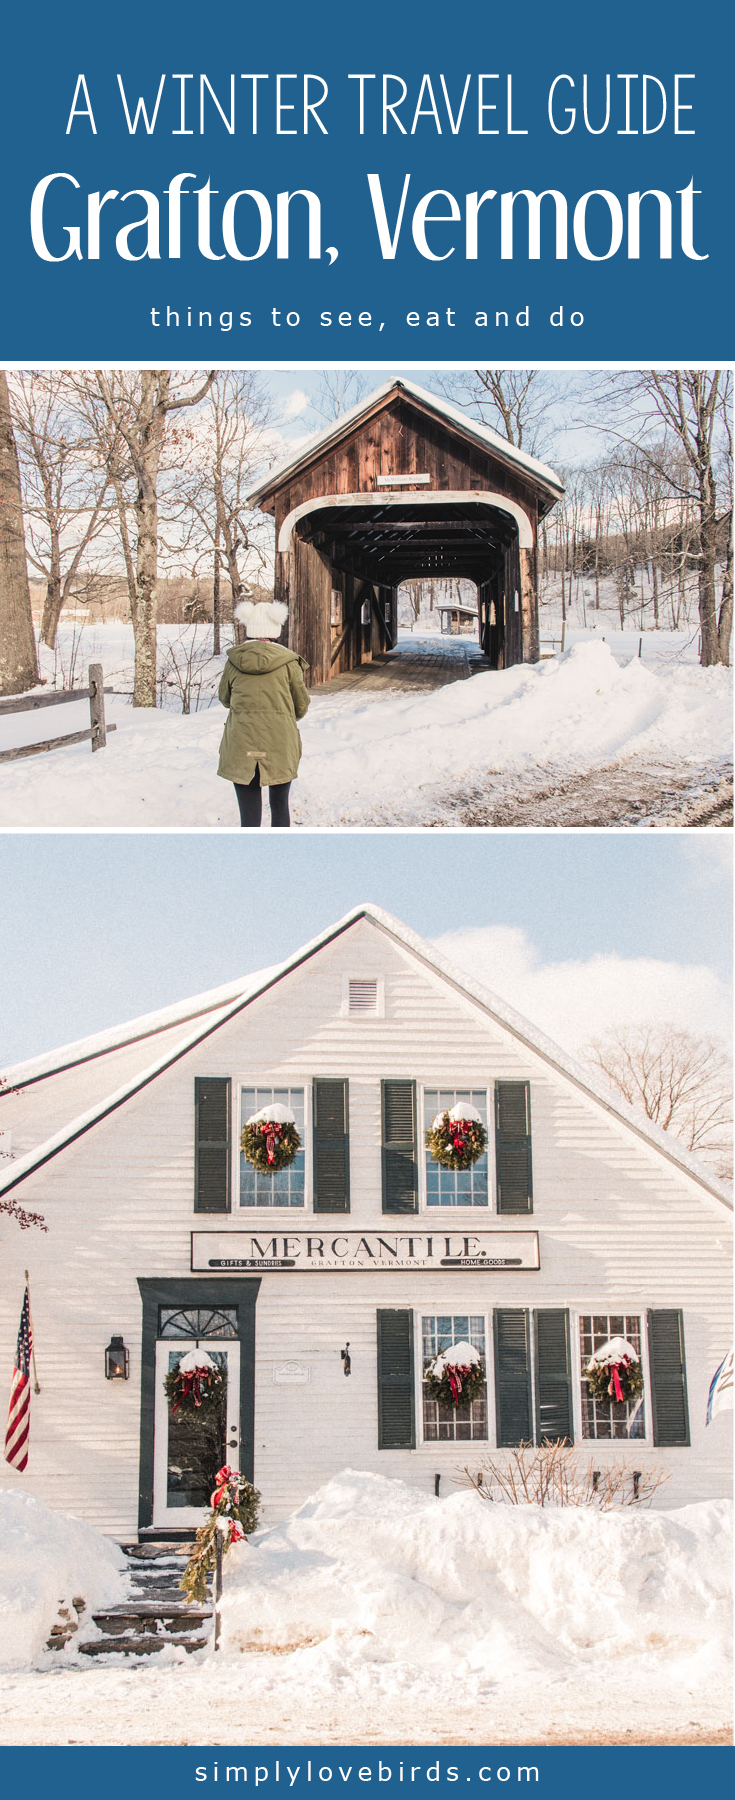 A Winter Travel Guide to Grafton Vermont - Simply Lovebirds